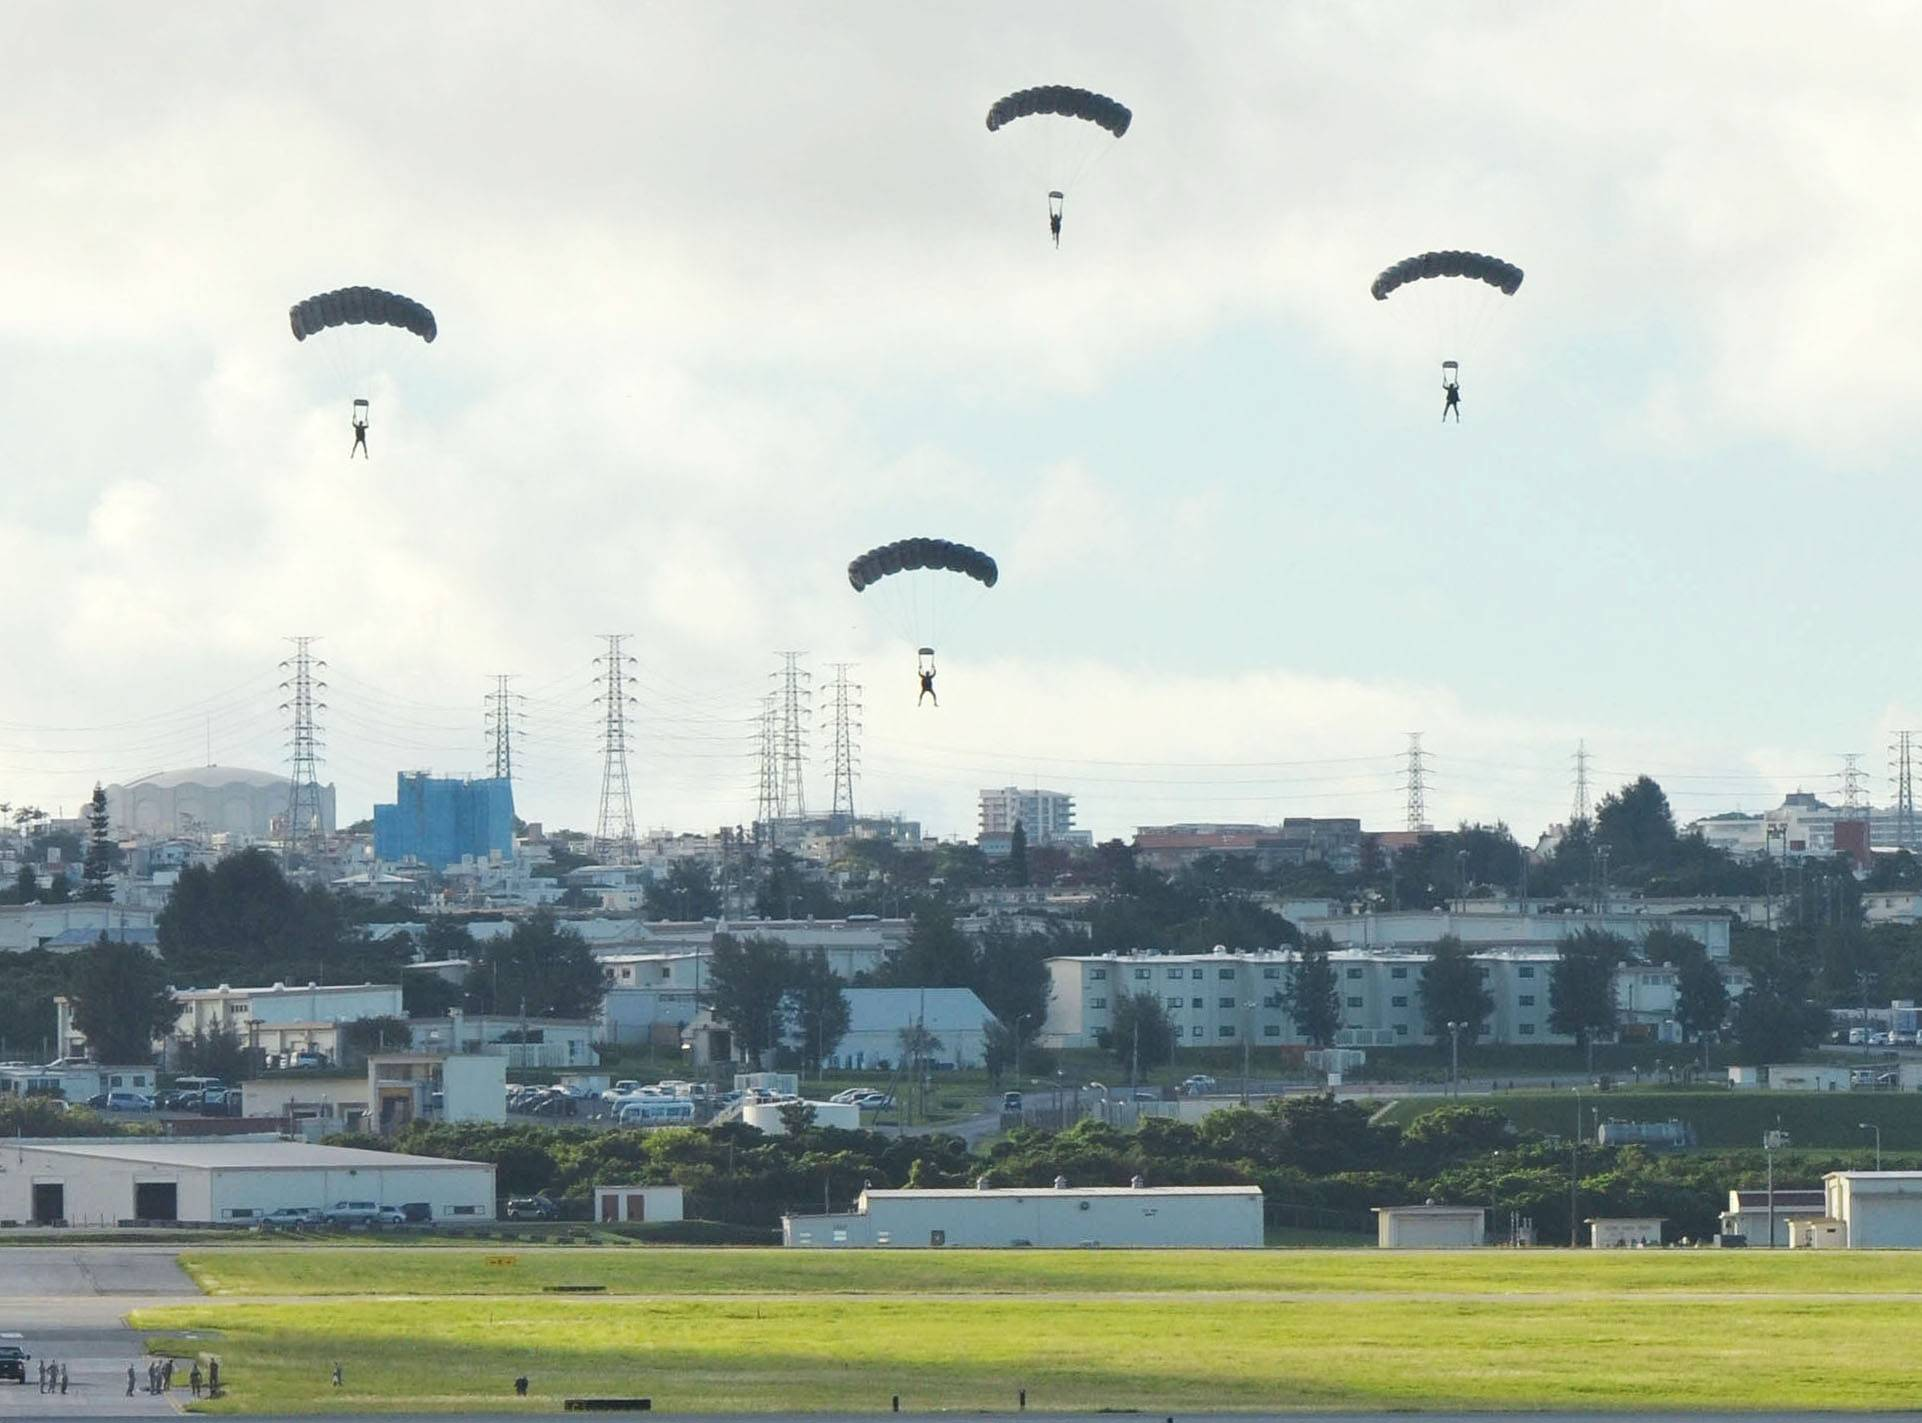 The U.S. military conducts a parachute drill on Sept. 21, 2017, at Kadena Air Base in Okinawa Prefecture, despite demands by both the central and local governments that the drill be canceled. | KYODO